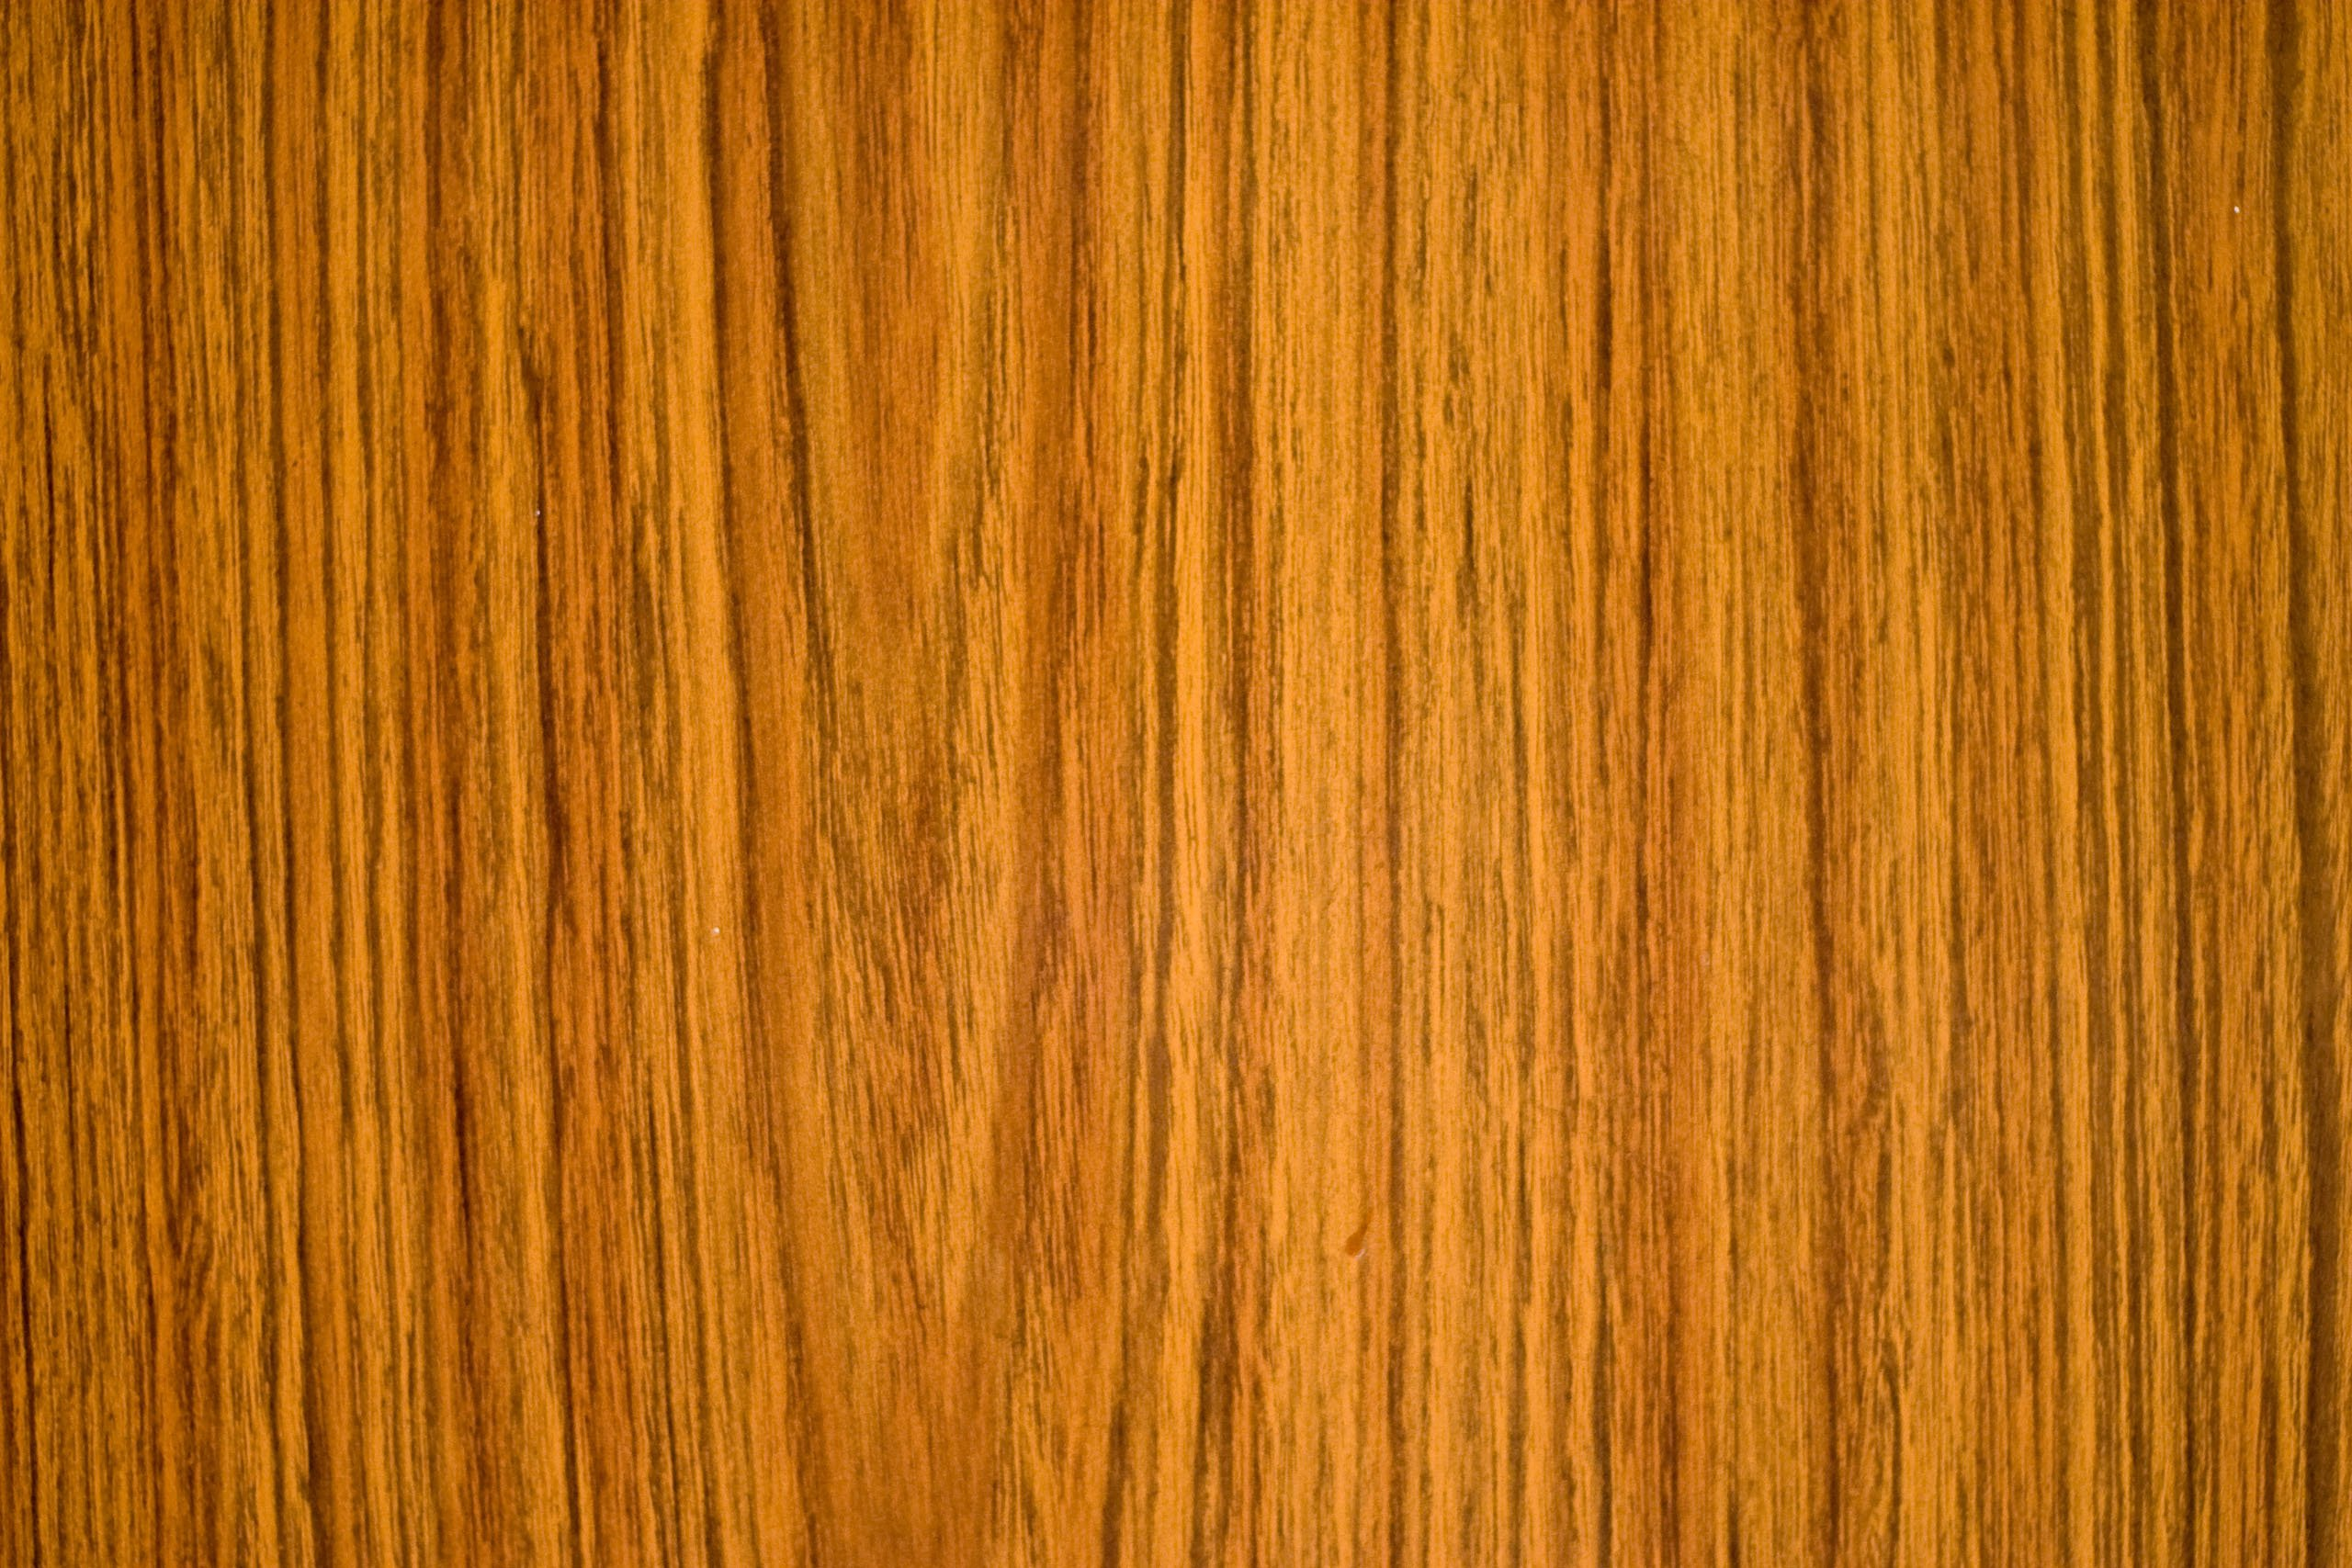 wallpaper wood grain wallpaper - Wood Grain Wall Paper